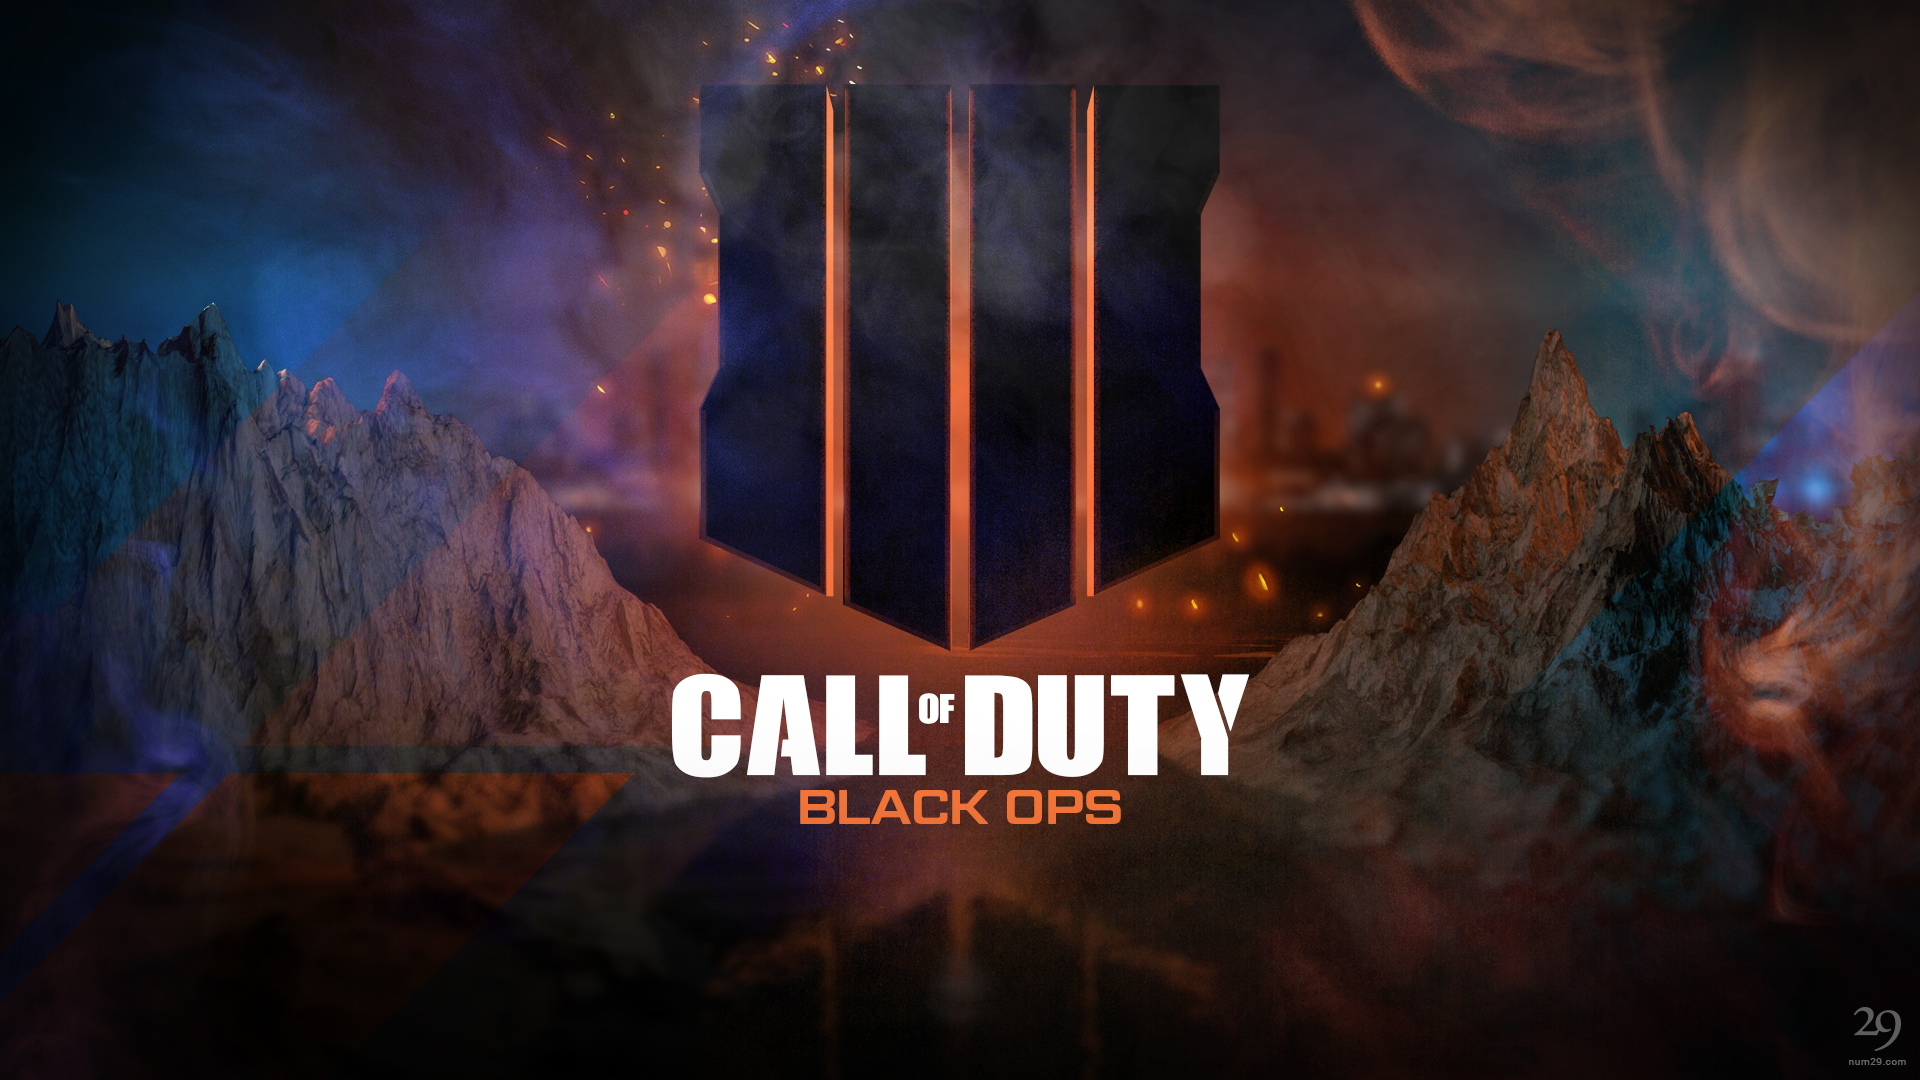 Click to Download the Call of Duty - Black Ops 4 Wallpaper by Number29